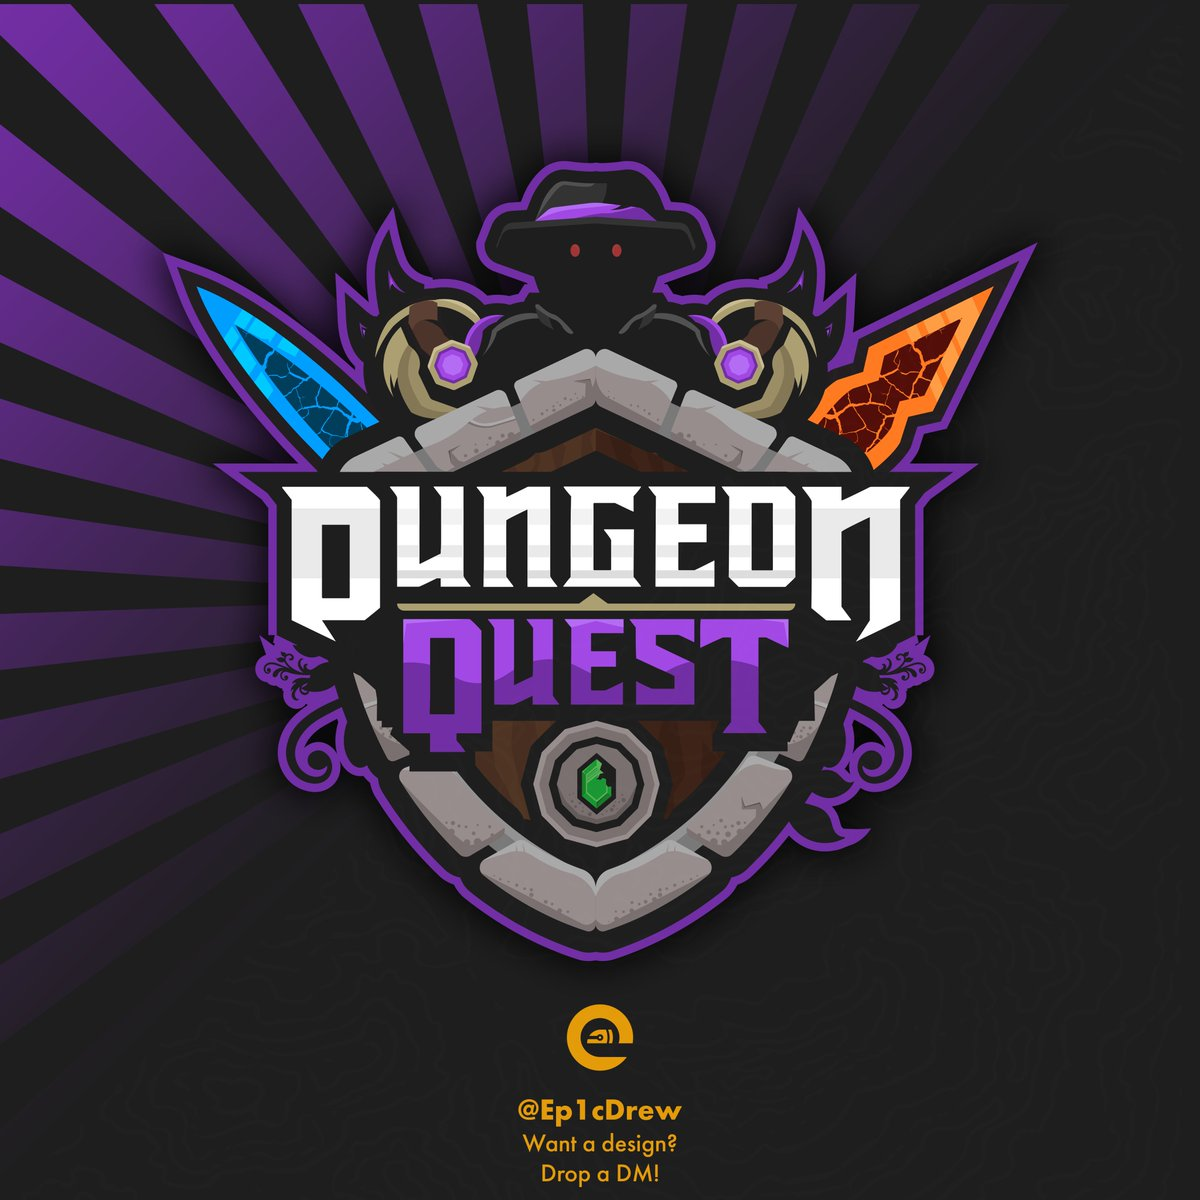 Dungeon Quest Roblox Download - Mai Credere Commission Logo For The Game Dungeon Quest